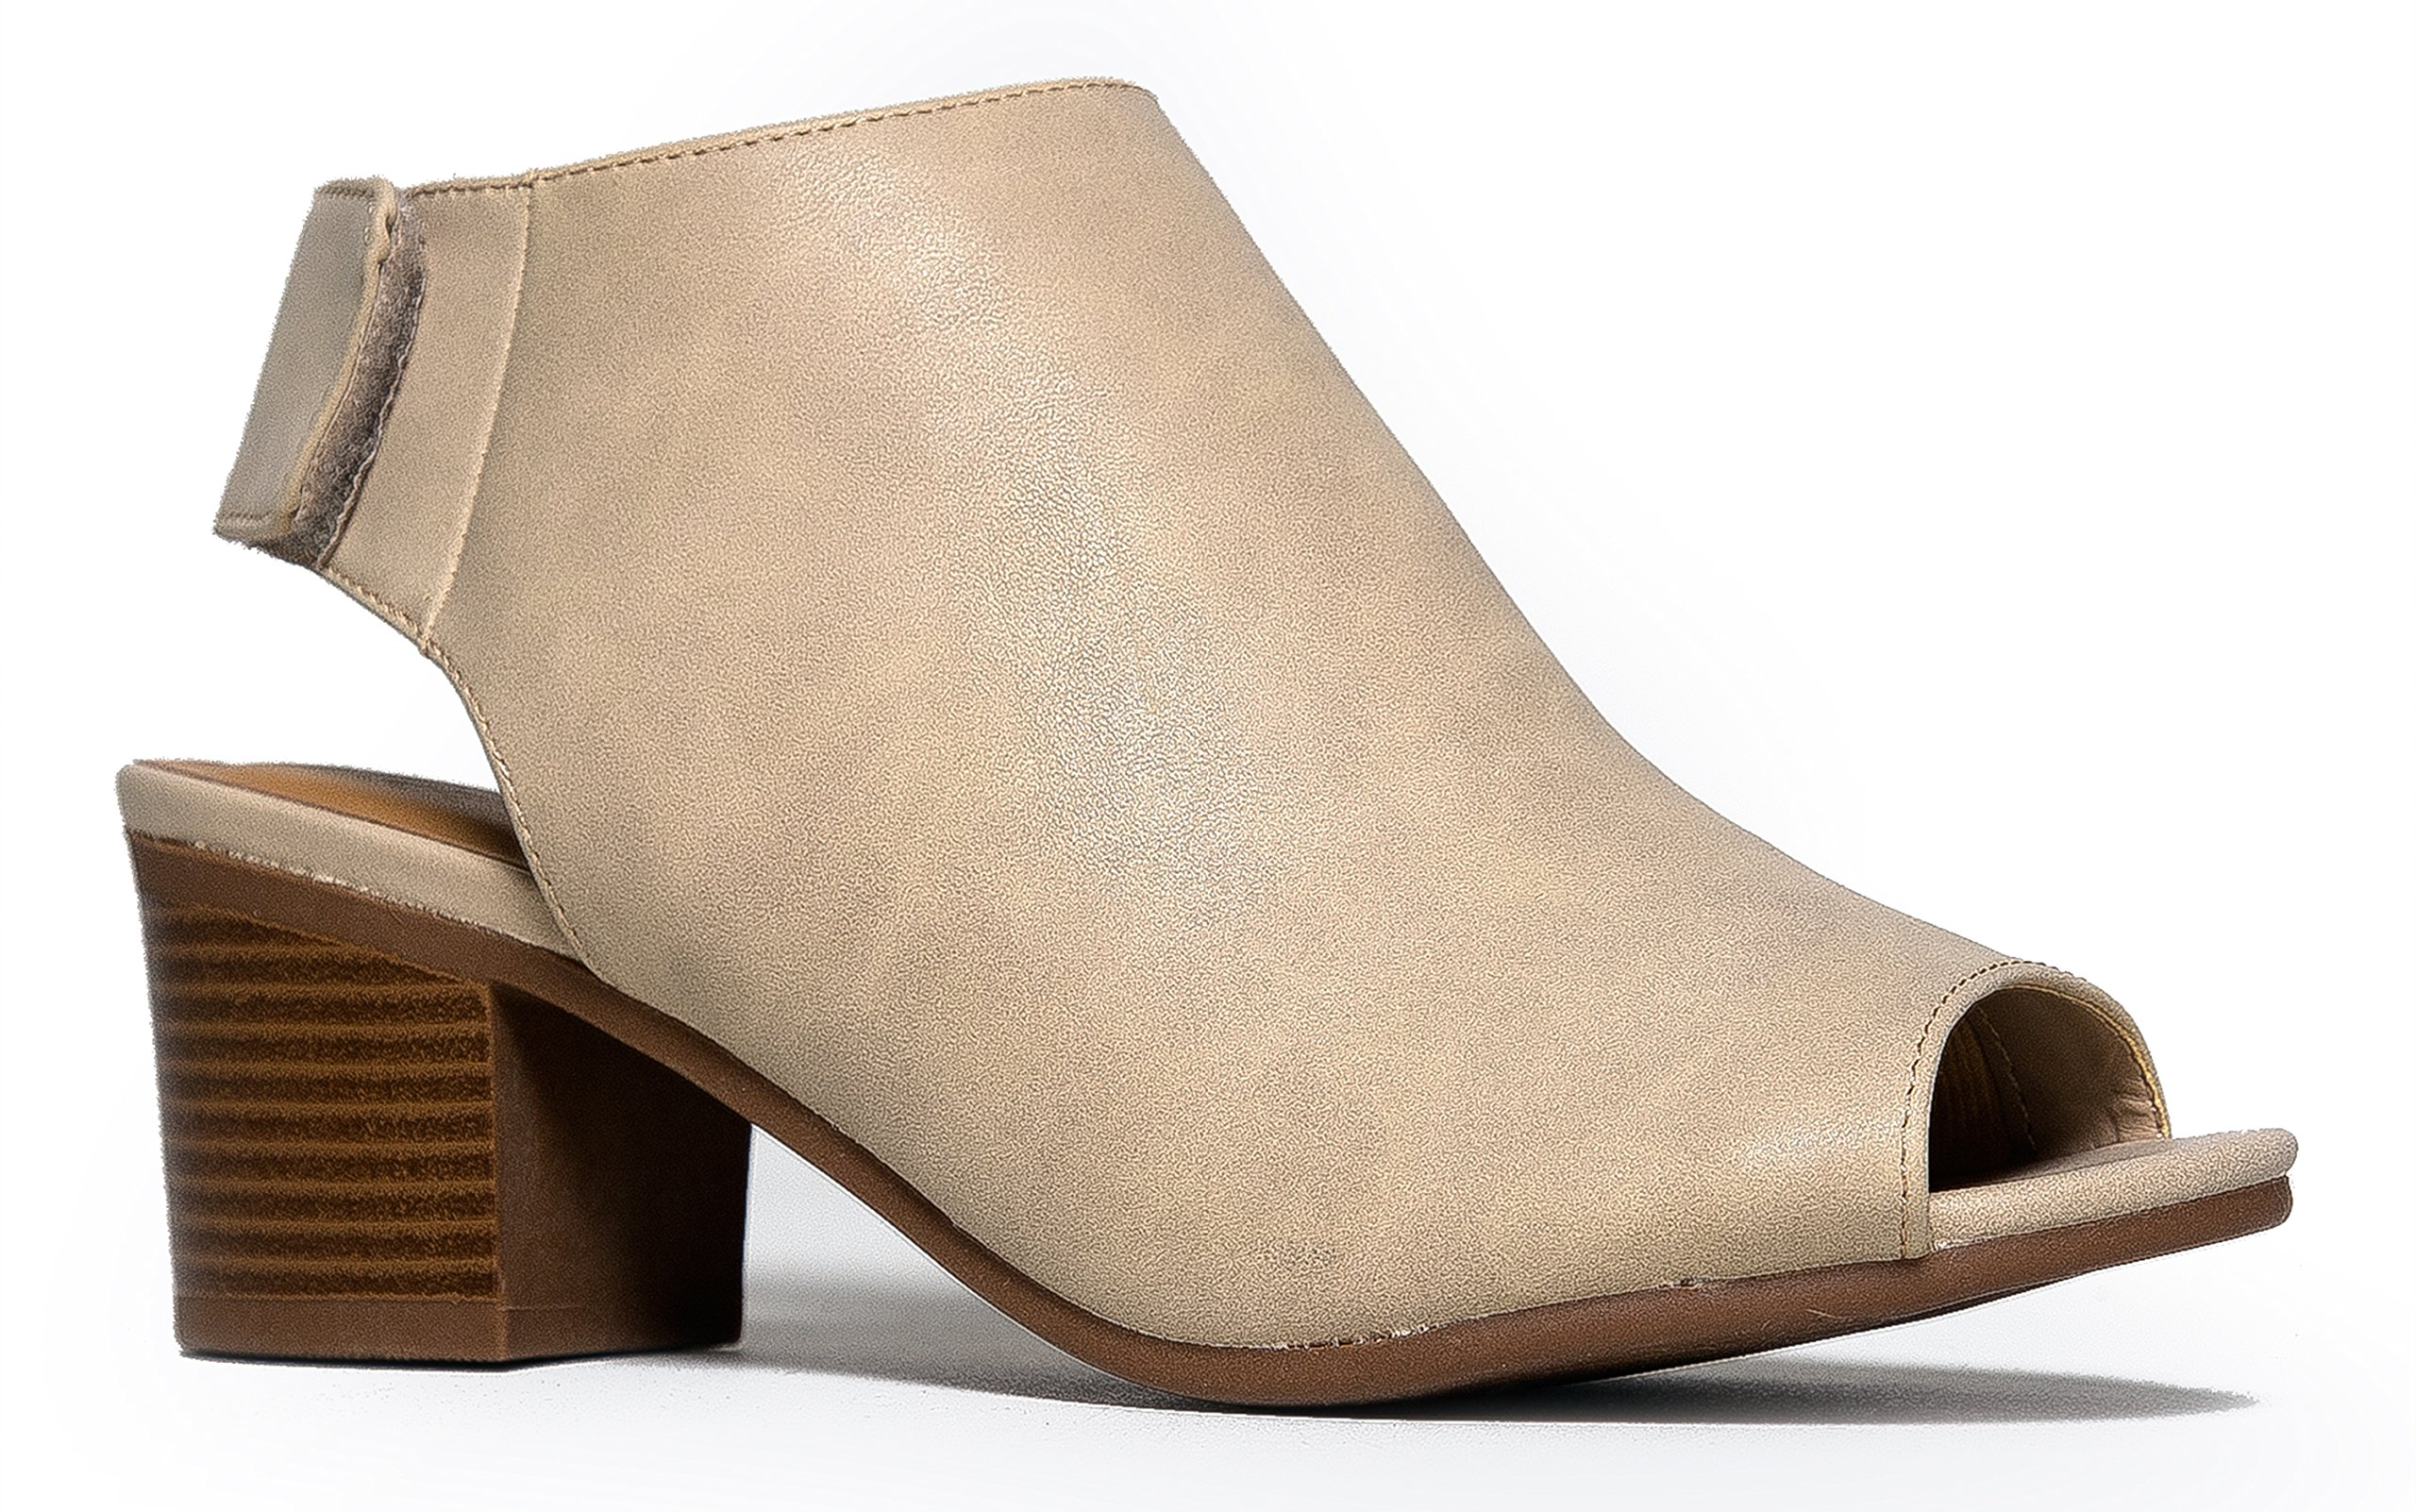 Peep Toe Bootie Low Stacked Heel - Open Toe Ankle Boot Cutout Velcro Enclosure 10